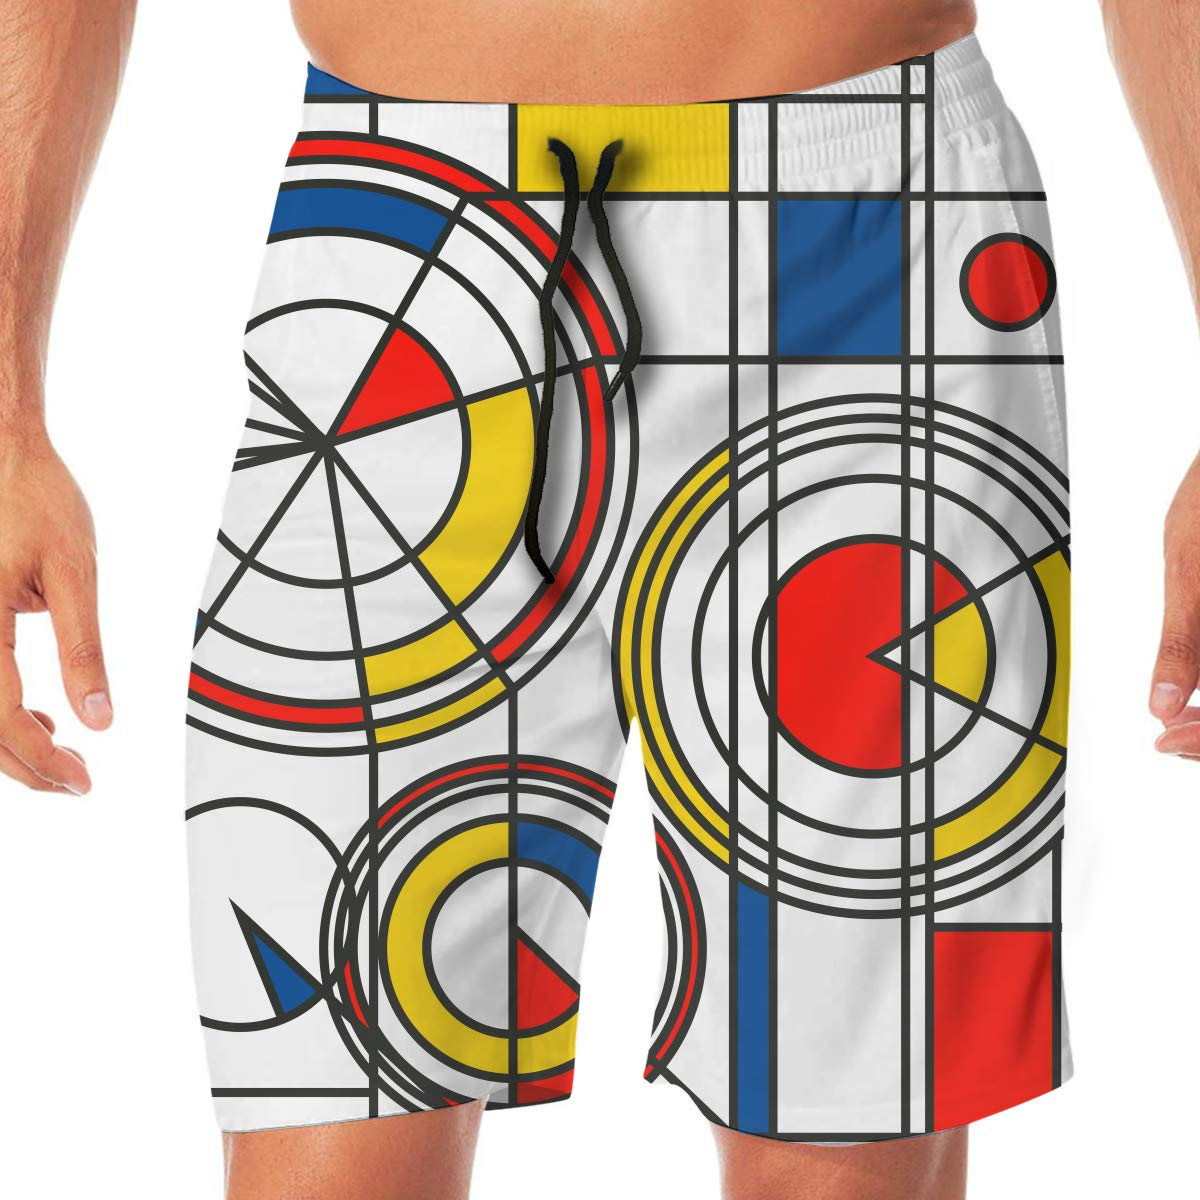 Flying XIE Yellow Red Blue Abstract Mens Humor Beach Shorts Surf Board Quick-Drying Swim Trunks